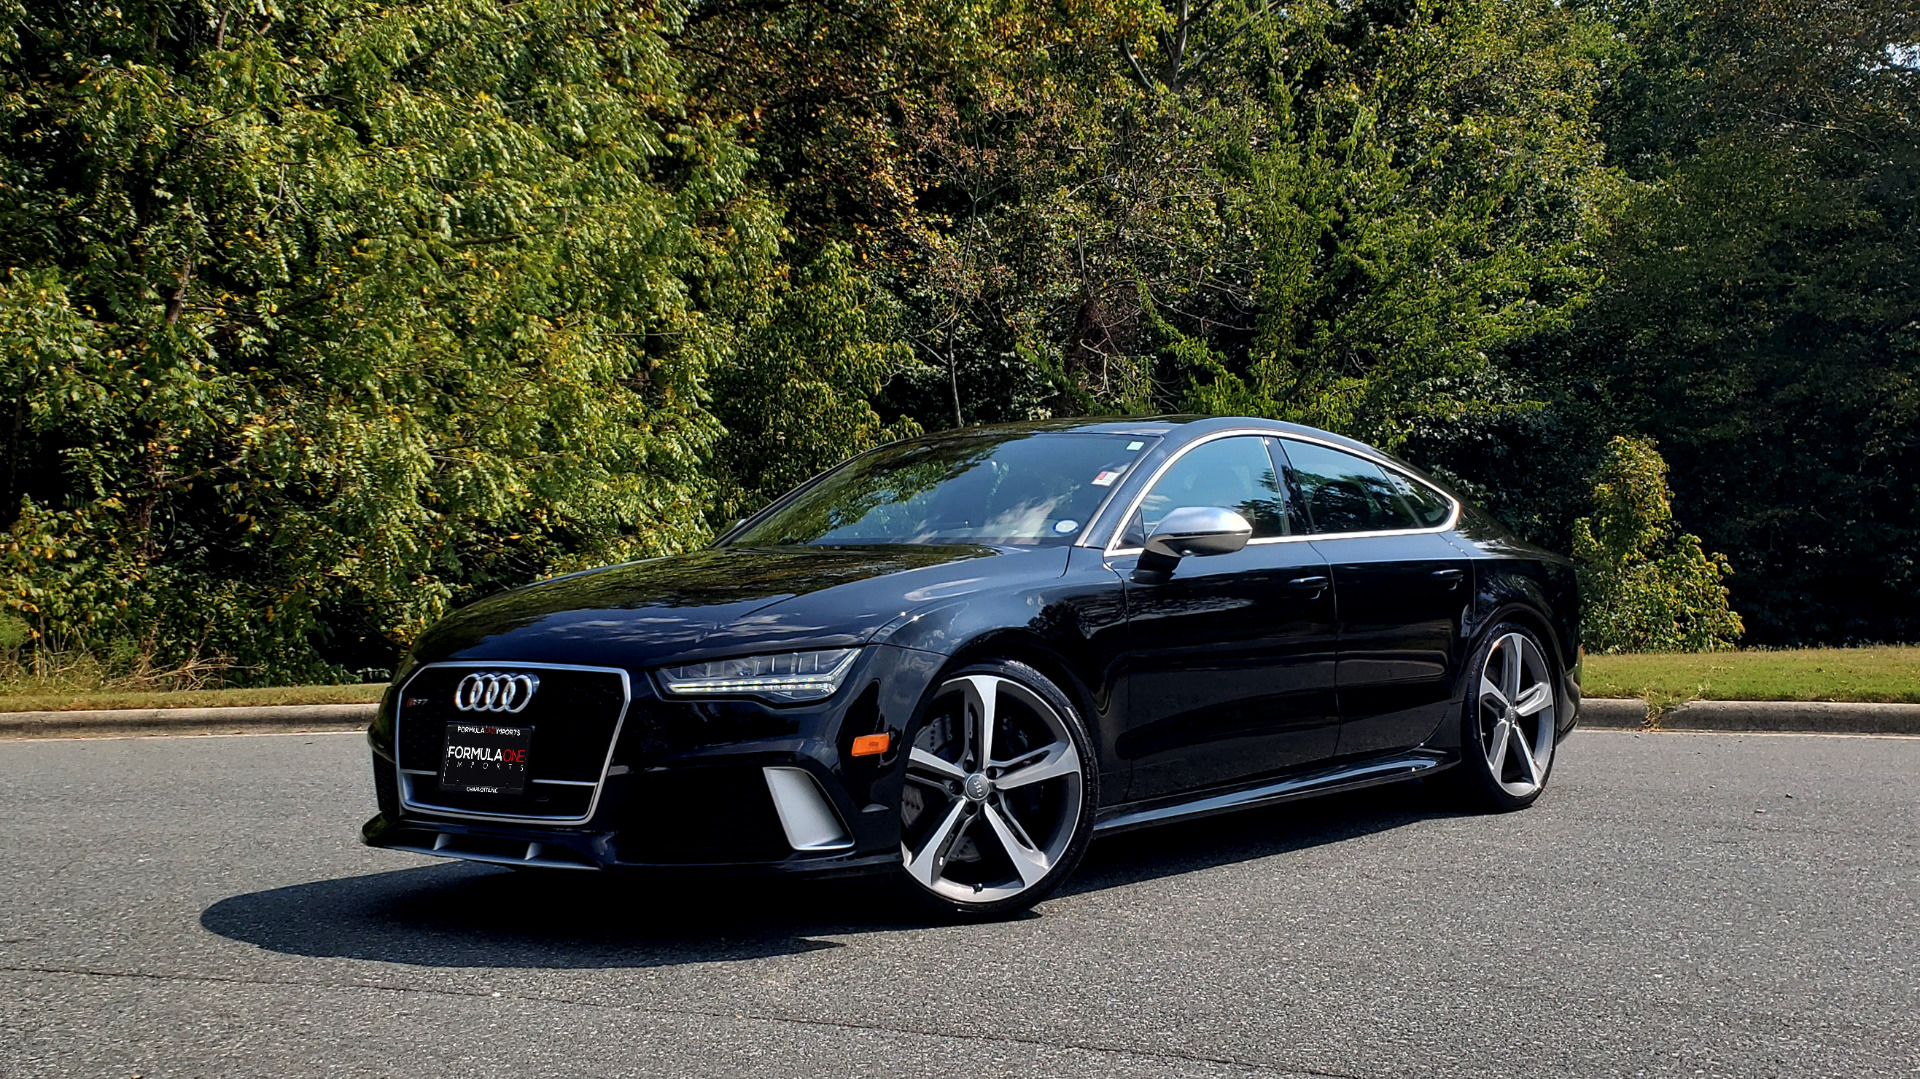 Used 2016 Audi RS 7 PRESTIGE / NAV / SUNROOF / BOSE / CAMERA / HTD STS for sale Sold at Formula Imports in Charlotte NC 28227 1